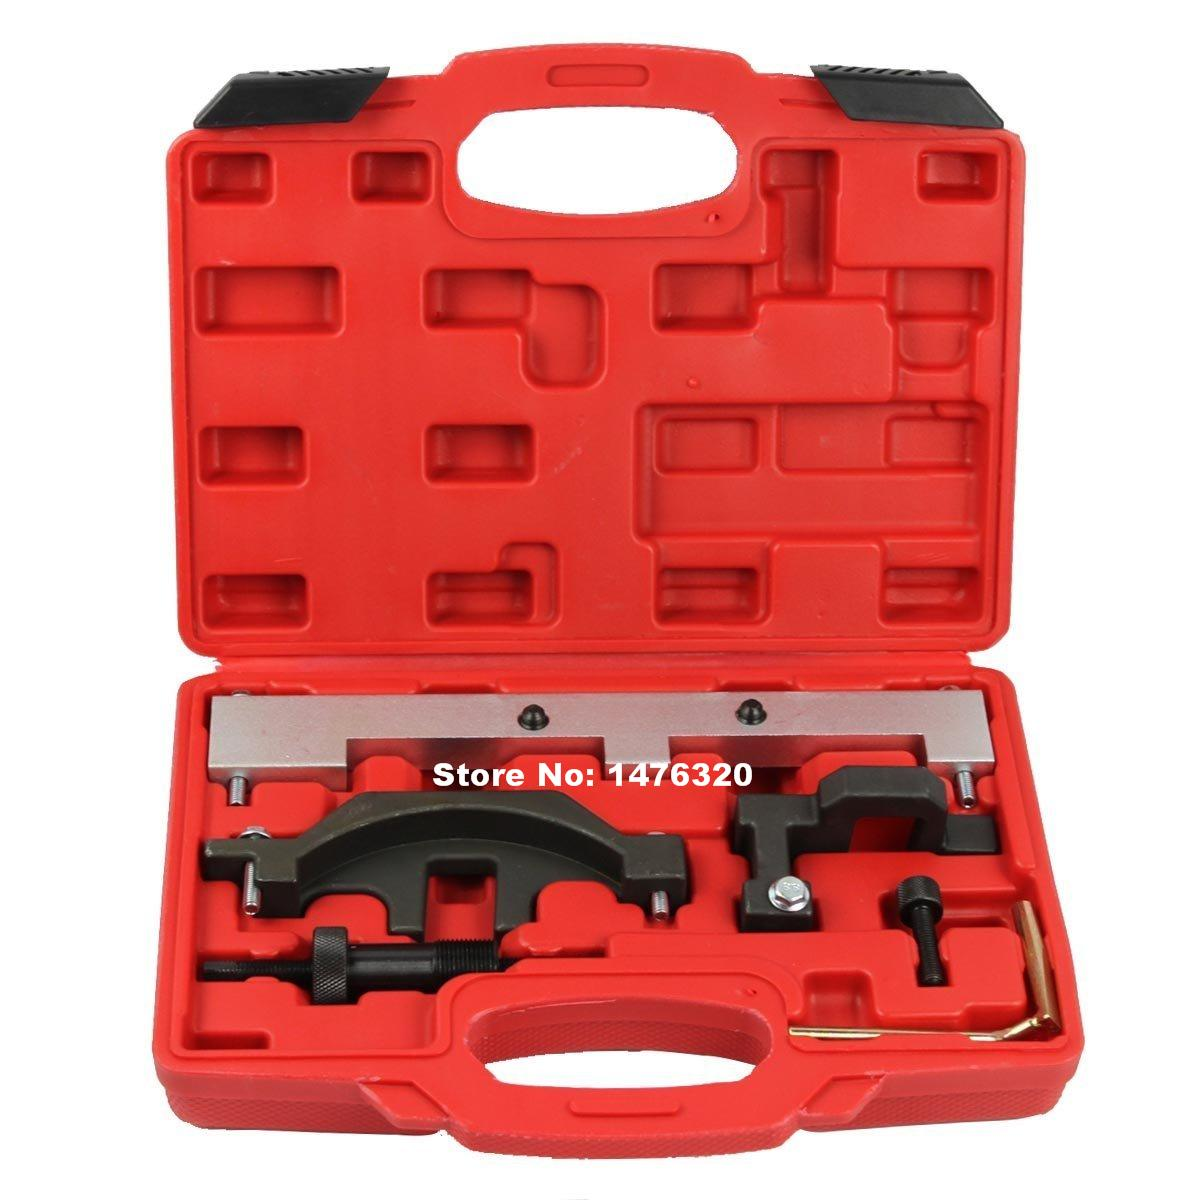 Automotive Engine Timing Camshaft Locking Setting Tool Kit For BMW N40 N45 N45T AT2027  engine camshaft locking setting timing tool kit for audi a1 a3 a4 a5 a6 tt skoda vw vag 1 6 2 0l tdi st0196